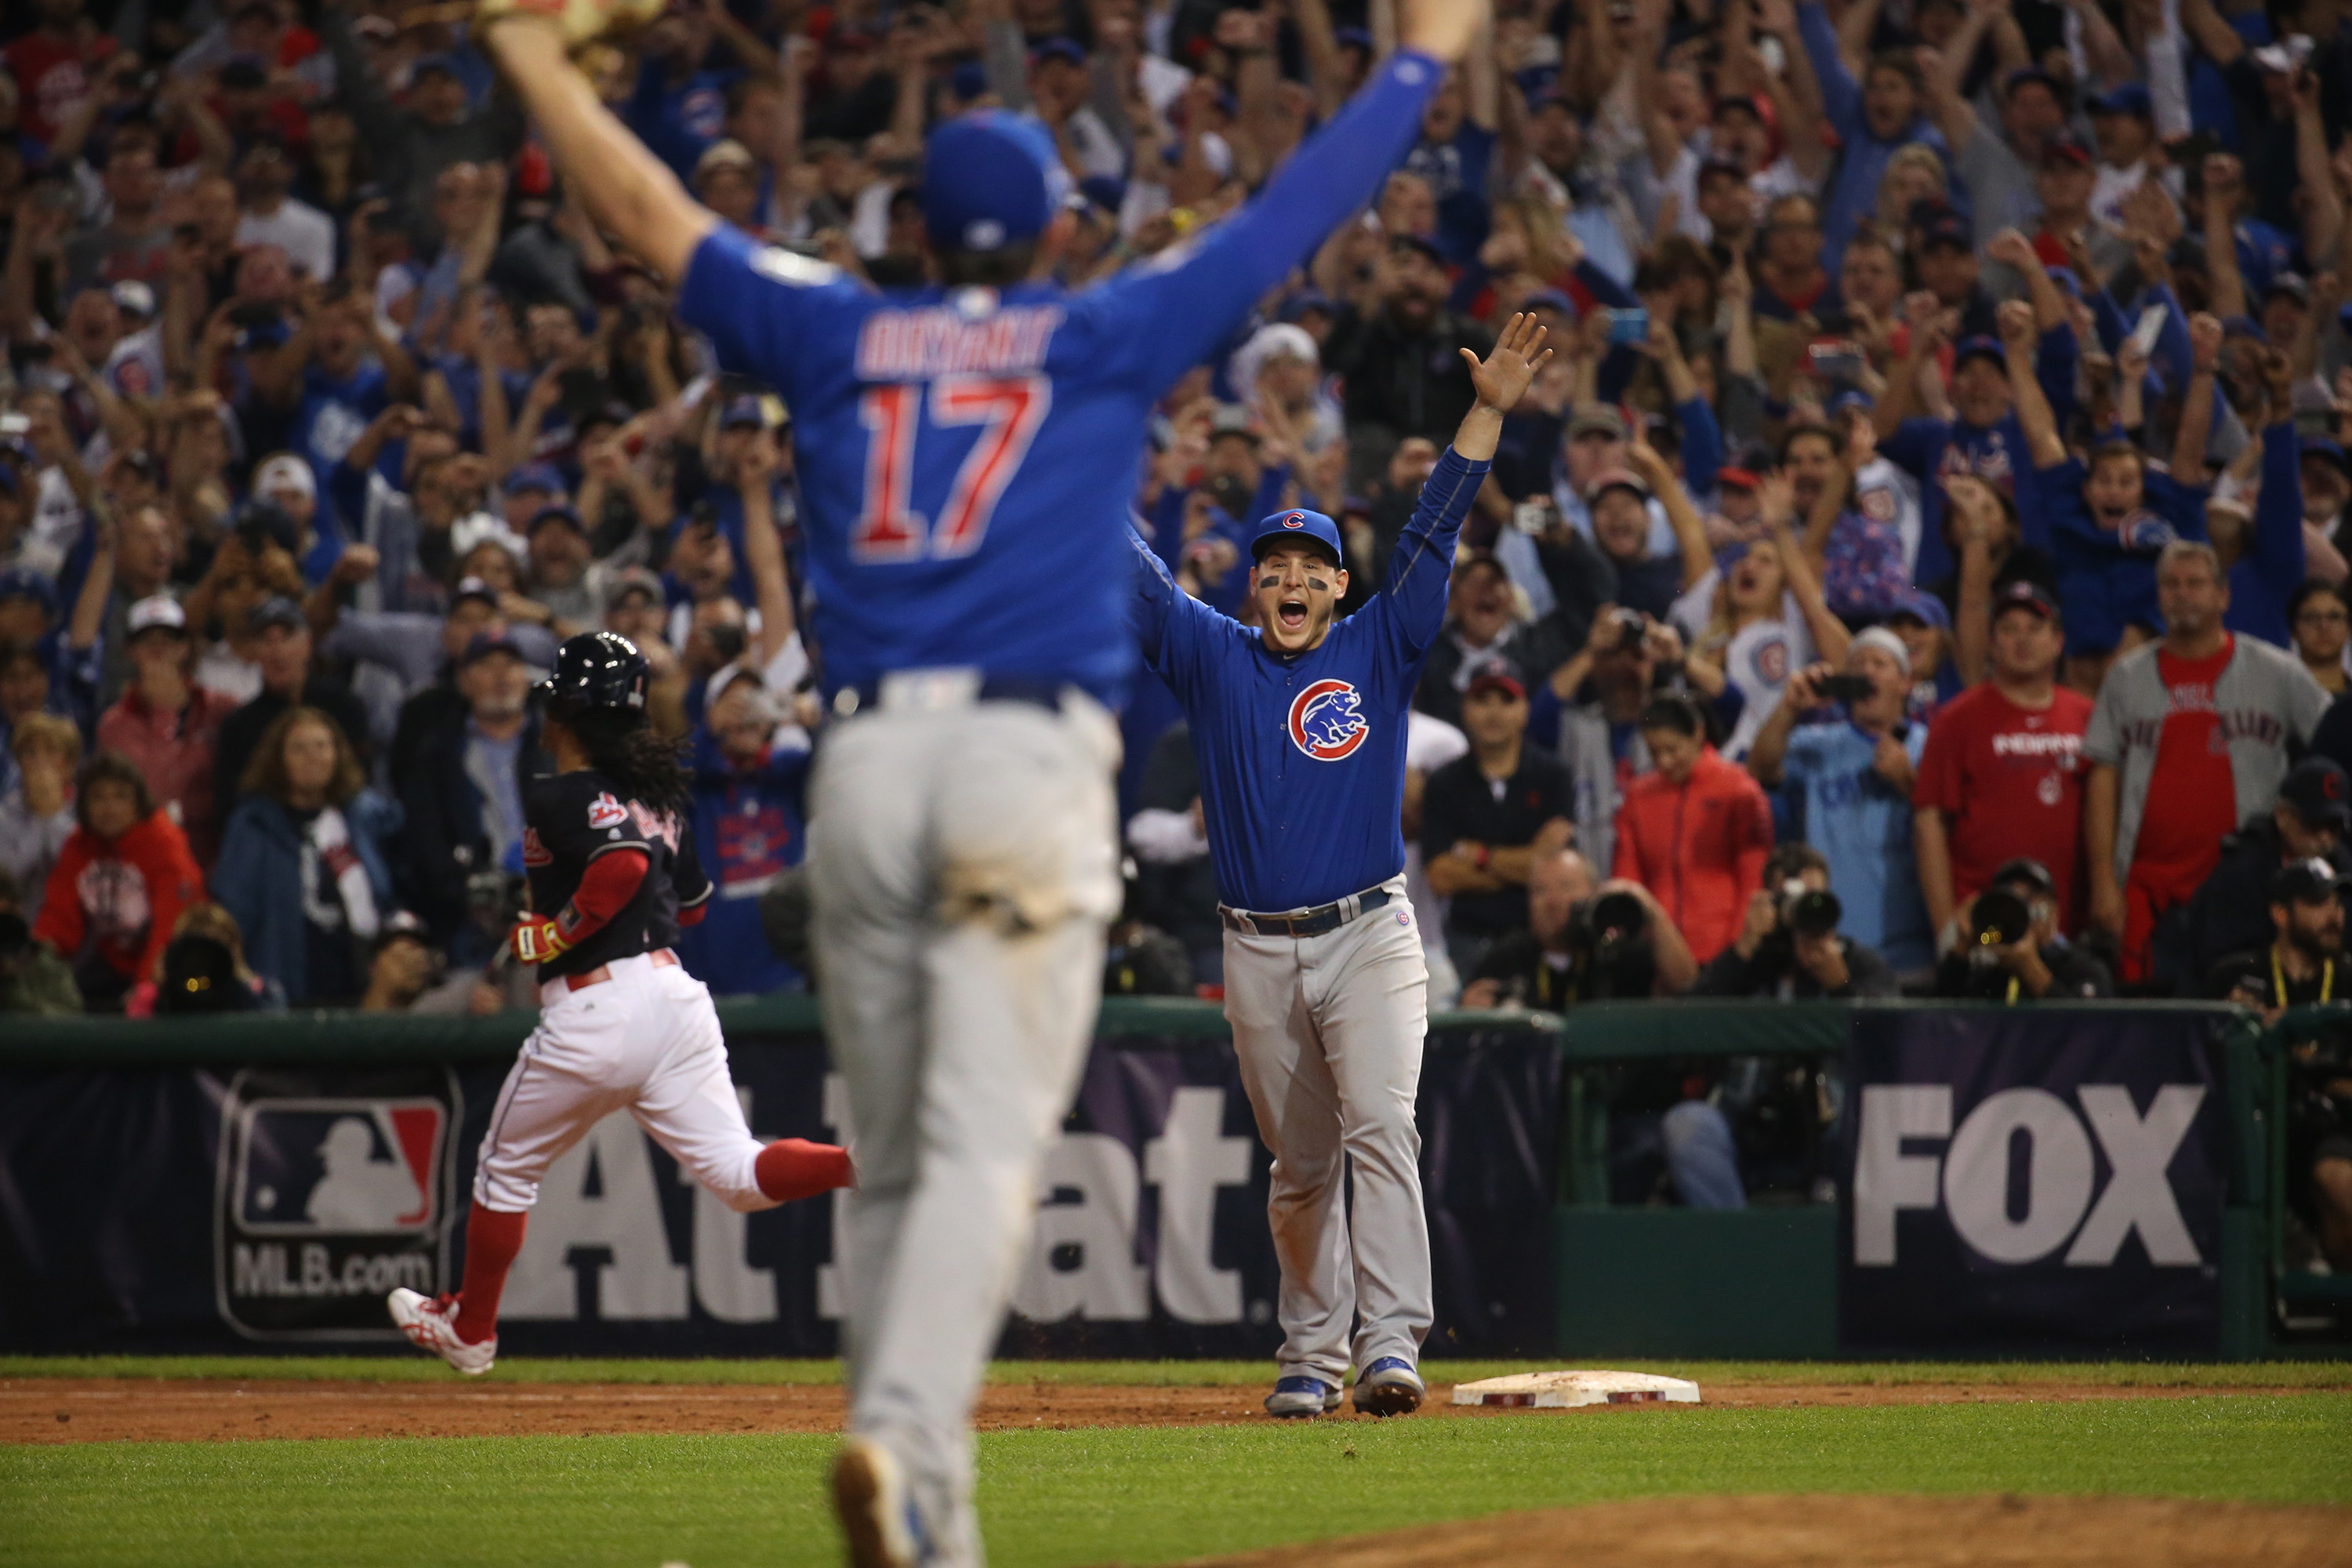 The Chicago Cubs celebrate after defeating the Cleveland Indians, Nov. 3, 2016 in Game 7 to win the World Series at Progressive Field in Cleveland, Ohio.